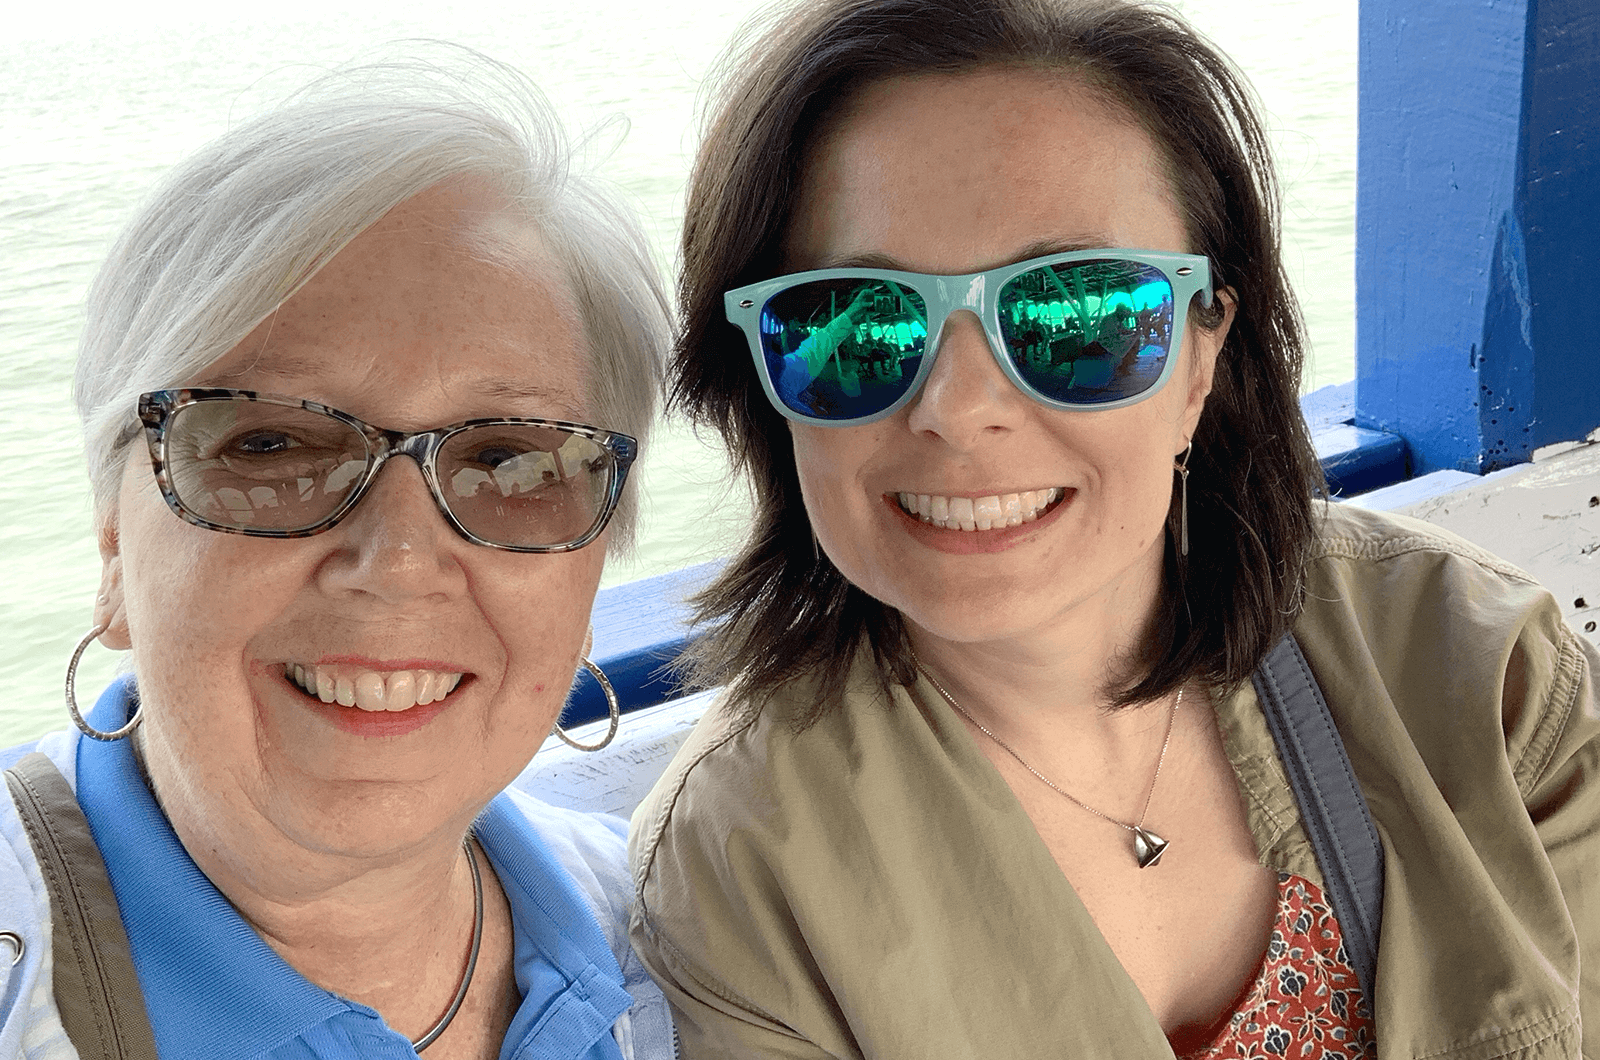 Two women posing and smiling wearing sunglasses